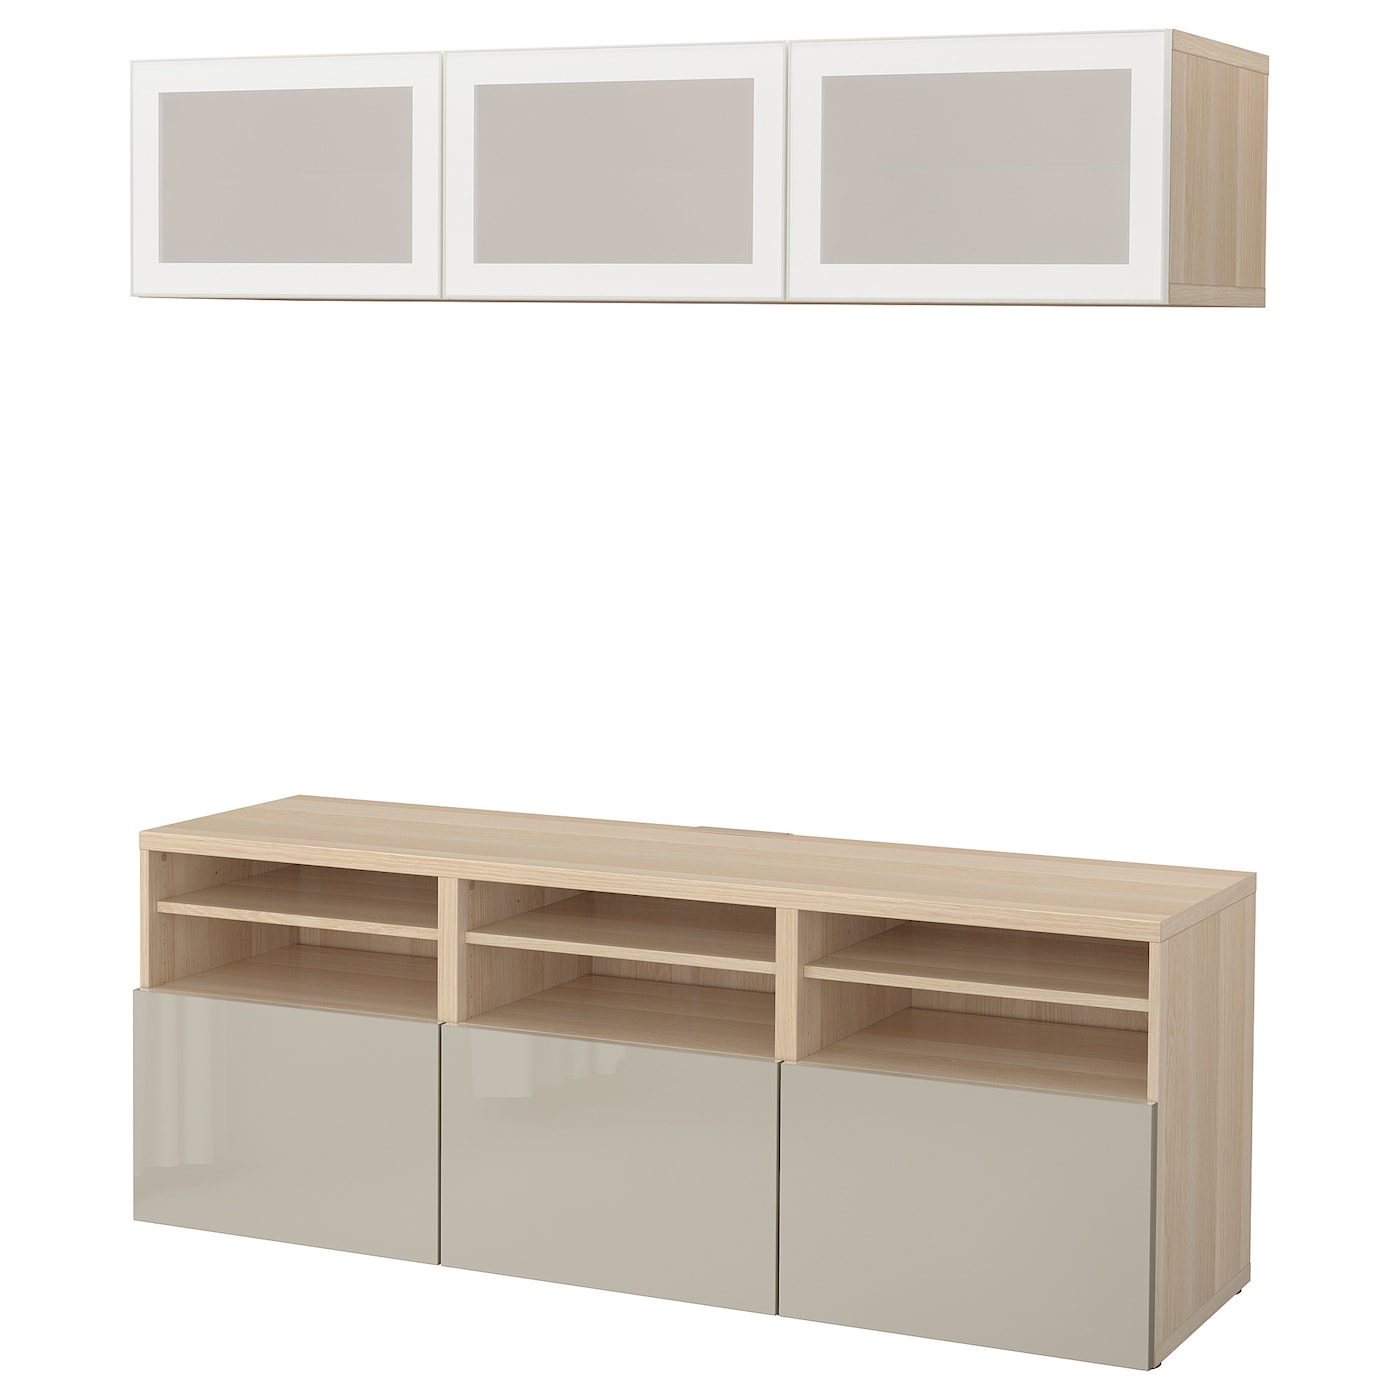 Picture of: Besta Tv Storage Combination Glass Doors White Stained Oak Effect Selsviken High Gloss Beige Frosted Glass Ikea